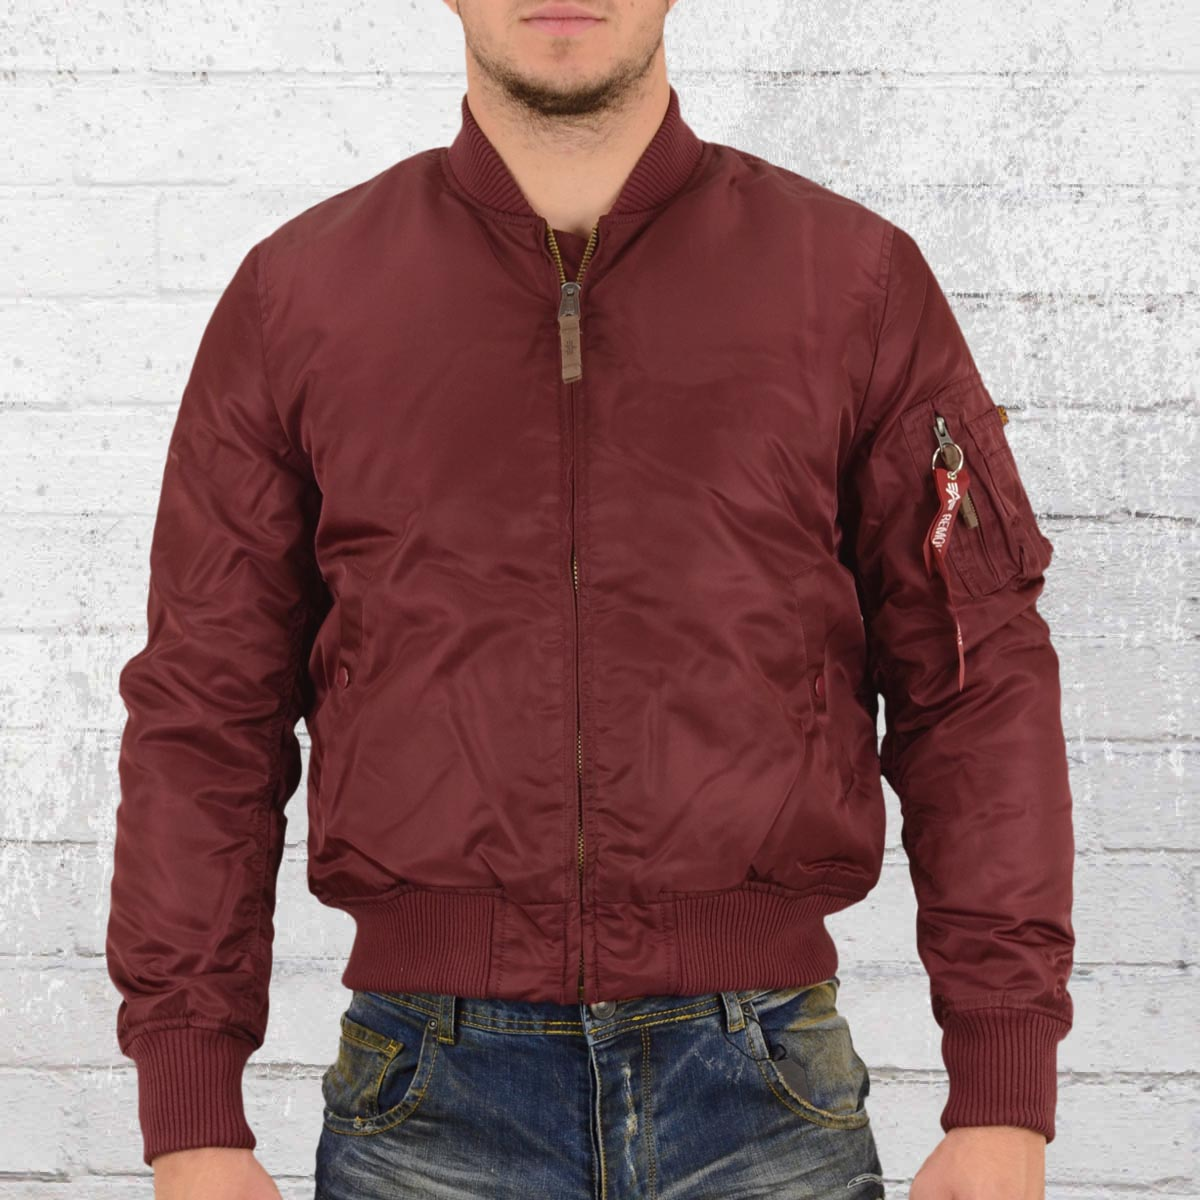 the latest 917c4 040f1 Order now | Alpha Industries Mens Bomber Jacket MA 1 VF59 ...